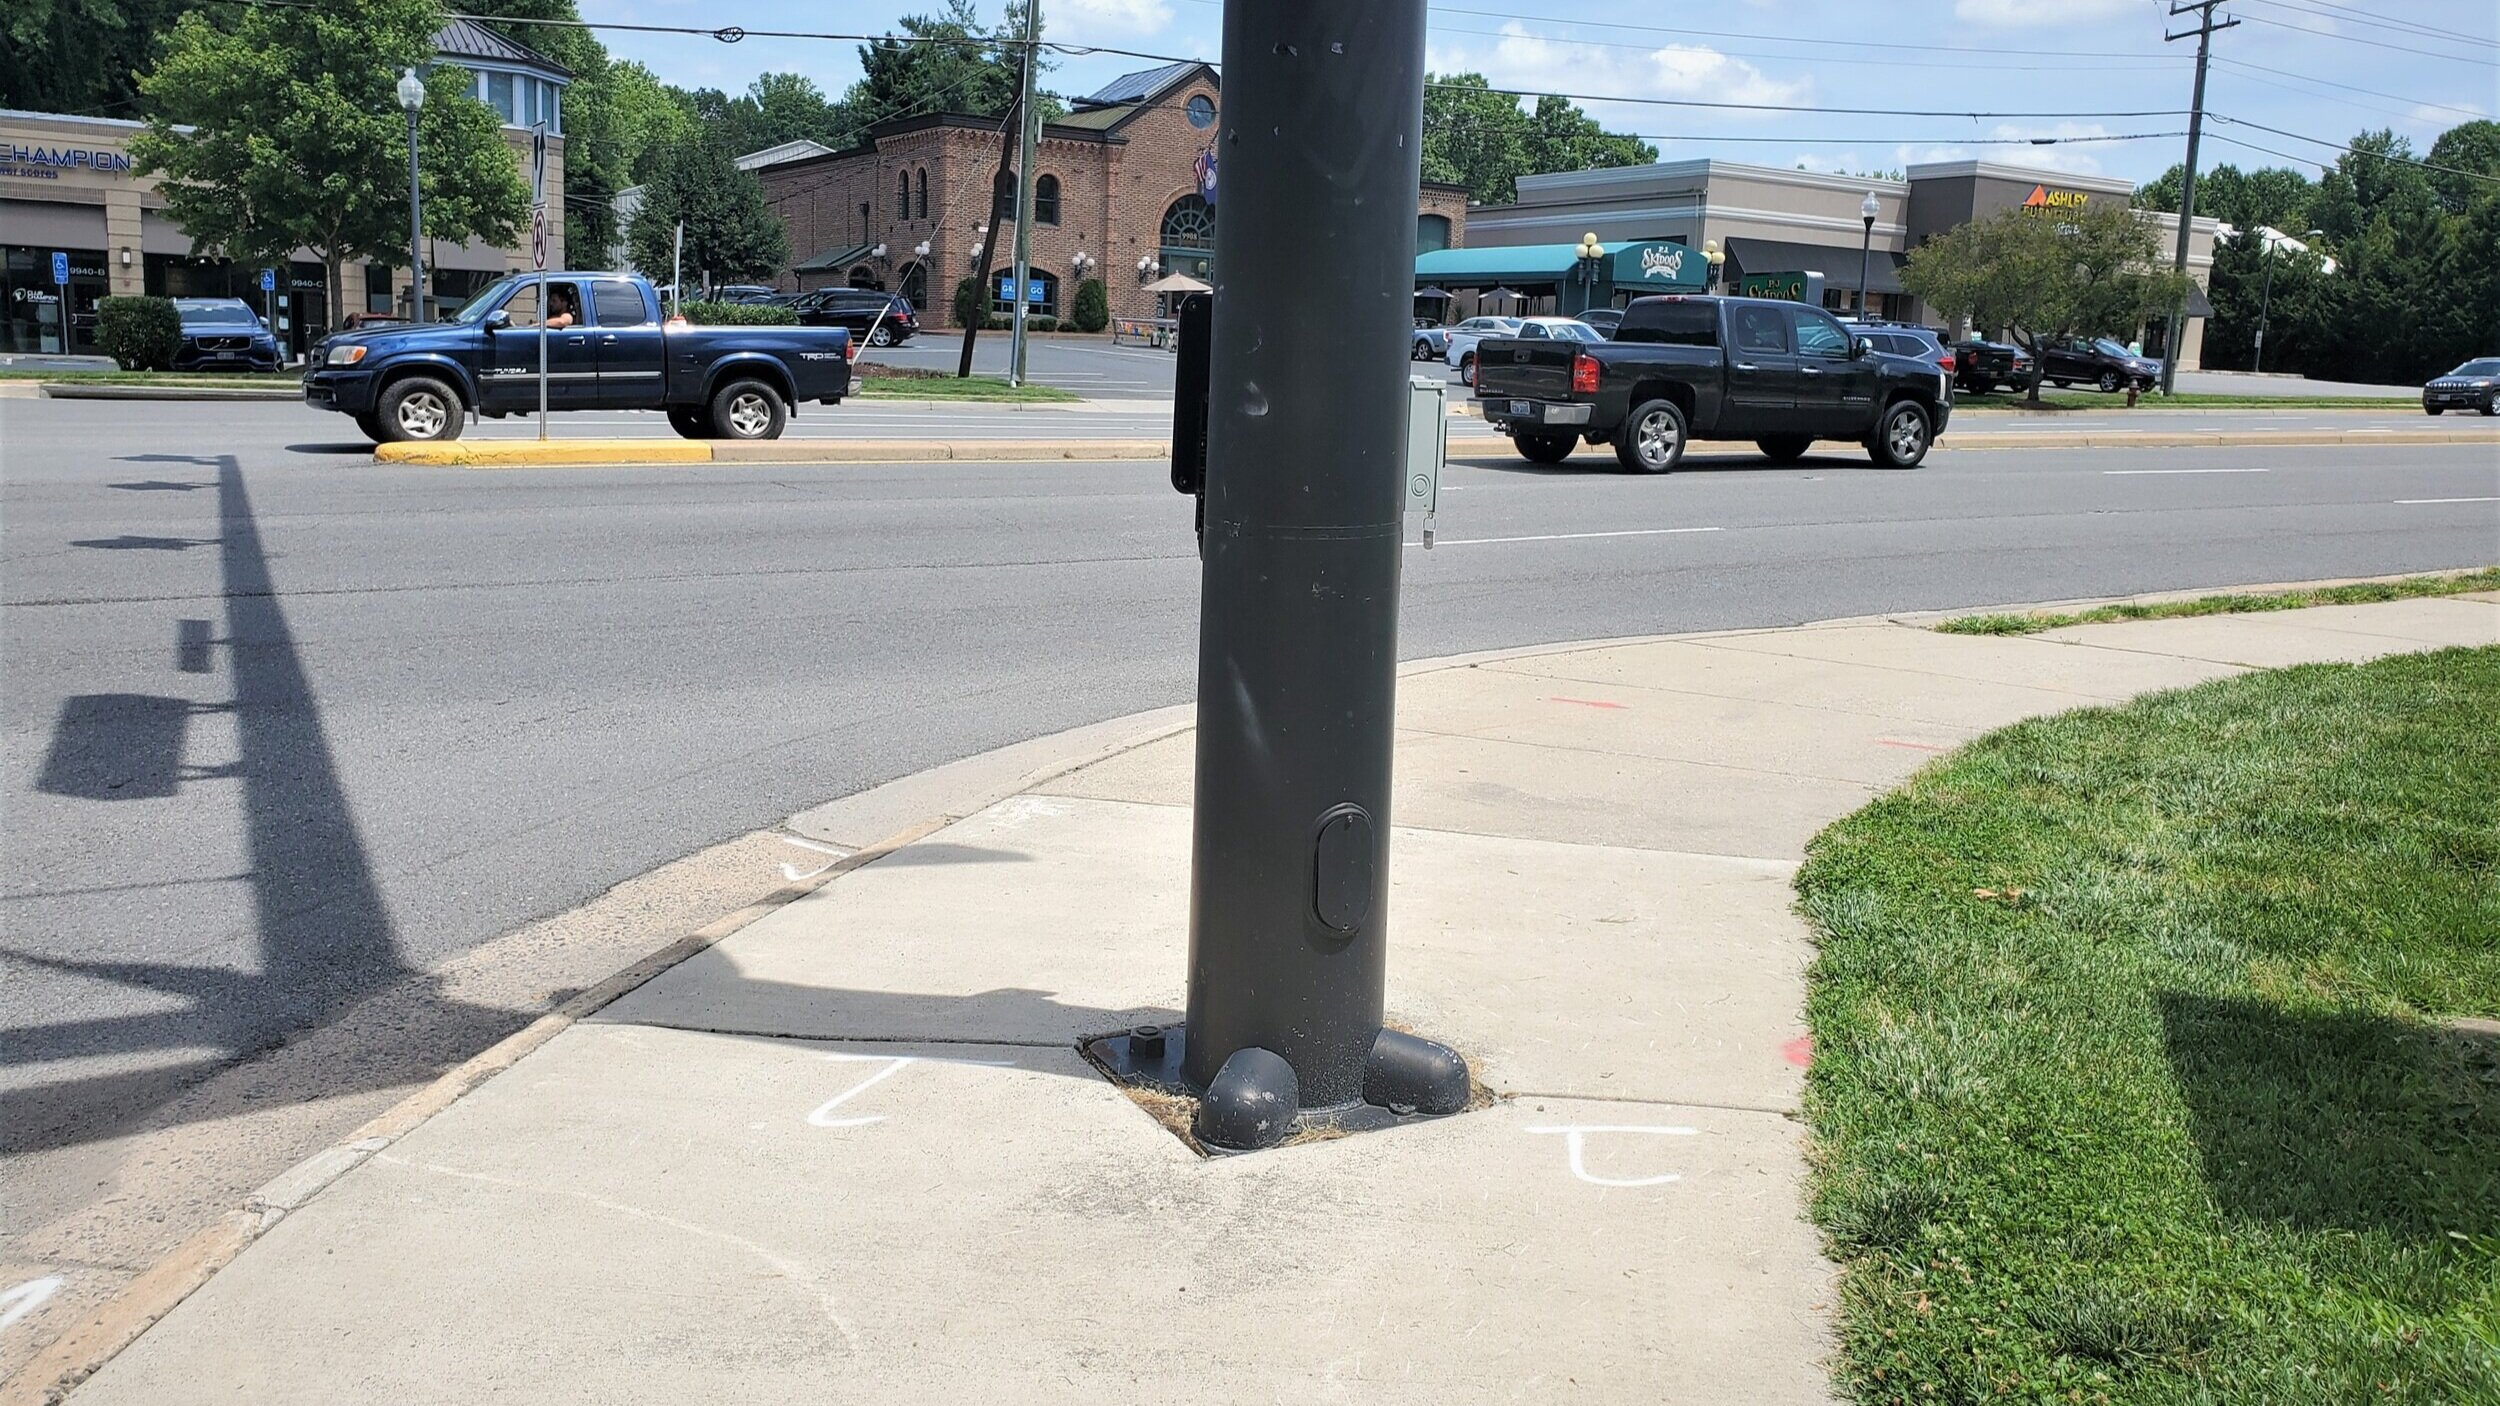 """A traffic light pole with a """"beg button"""" for crossing is placed in the middle of the sidewalk."""